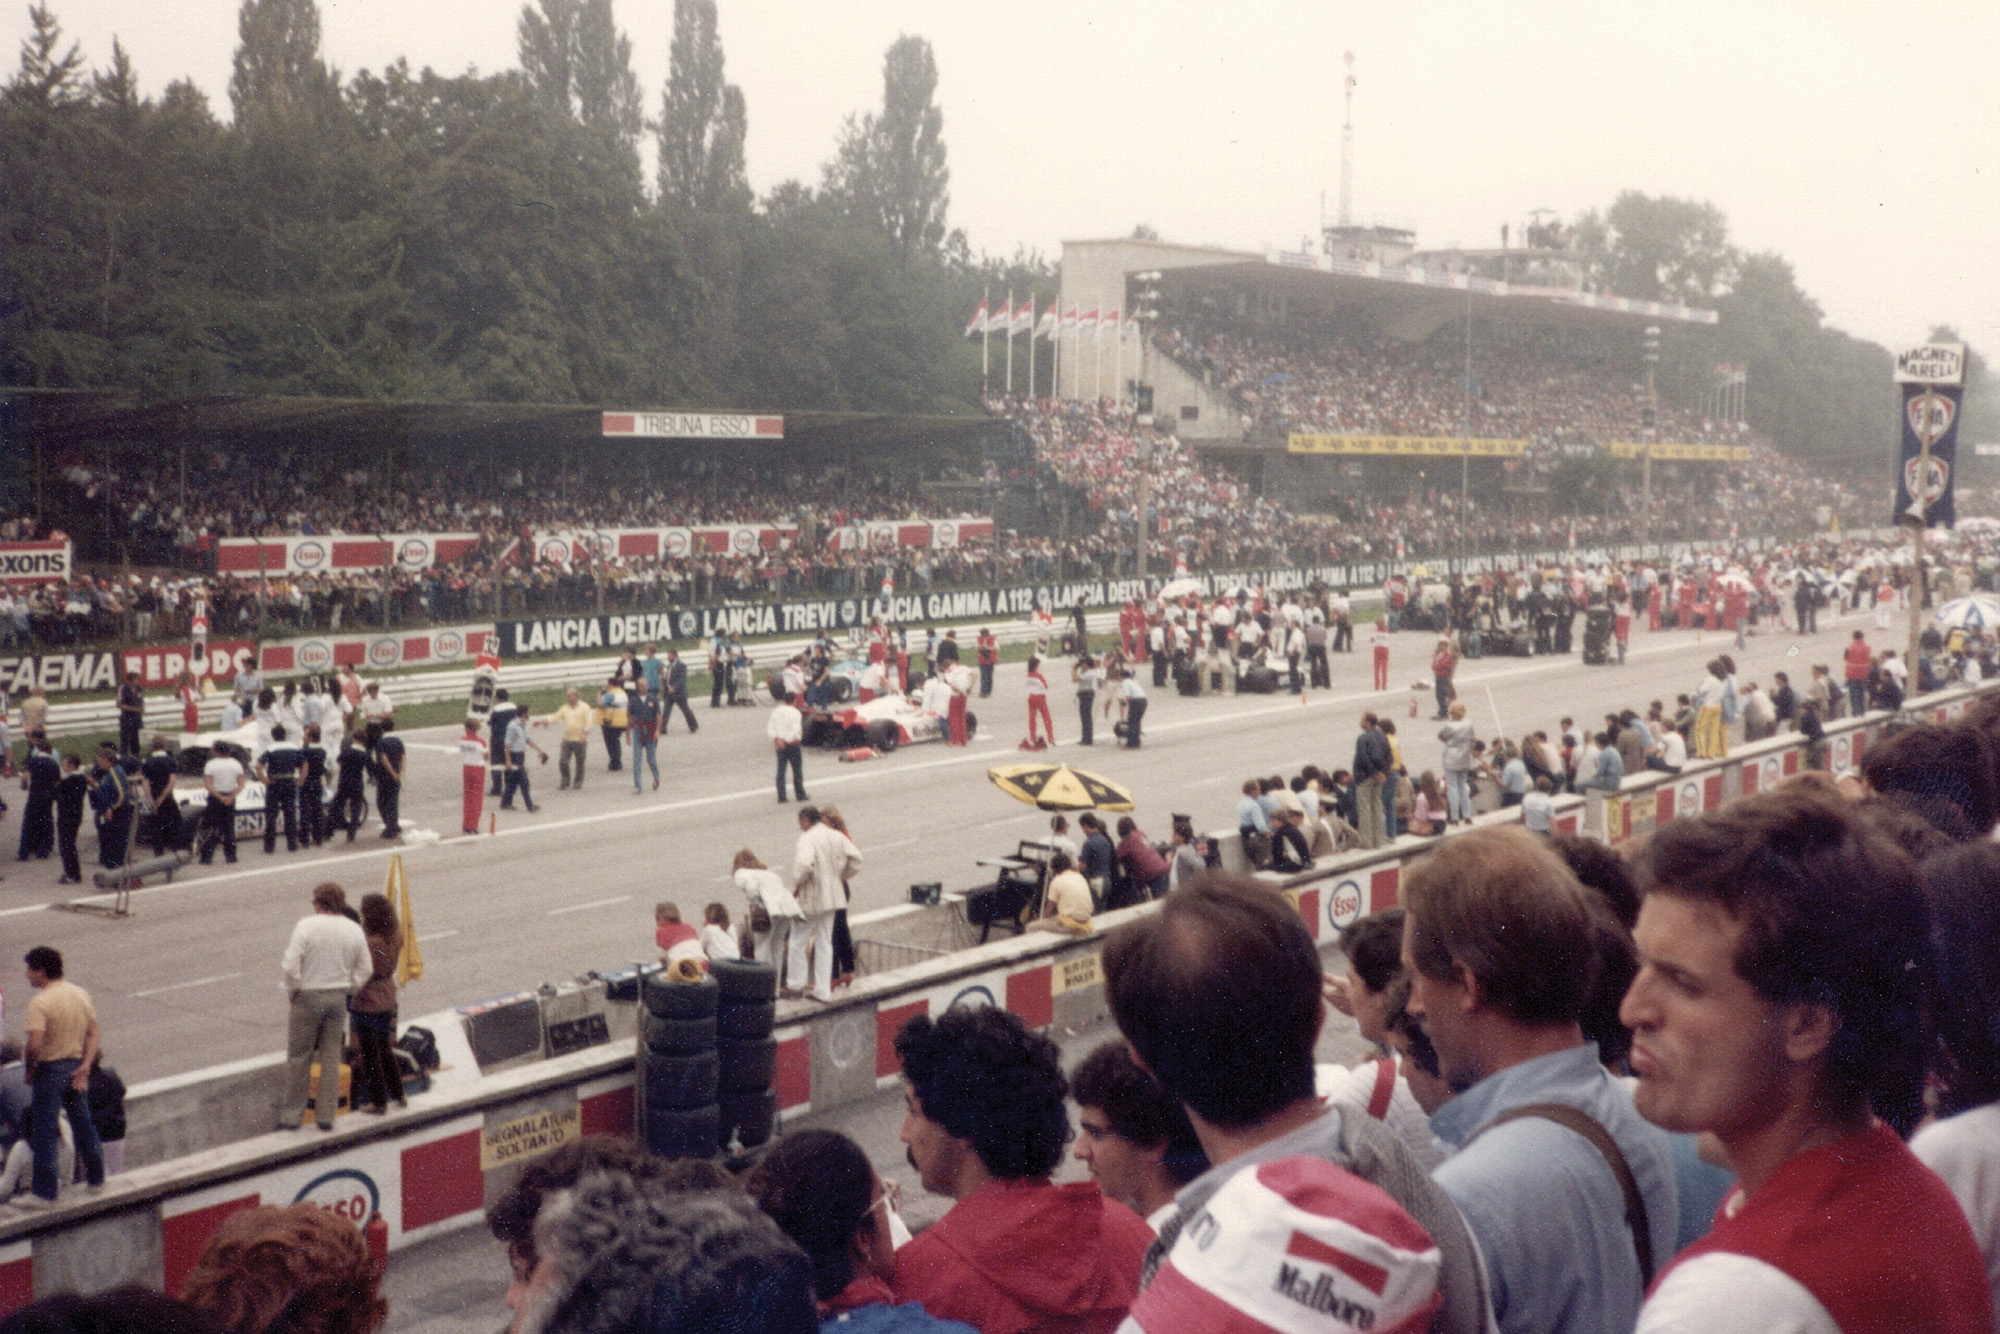 A pre-race view of the 1981 Italian Grand Prix grid from the grandstands